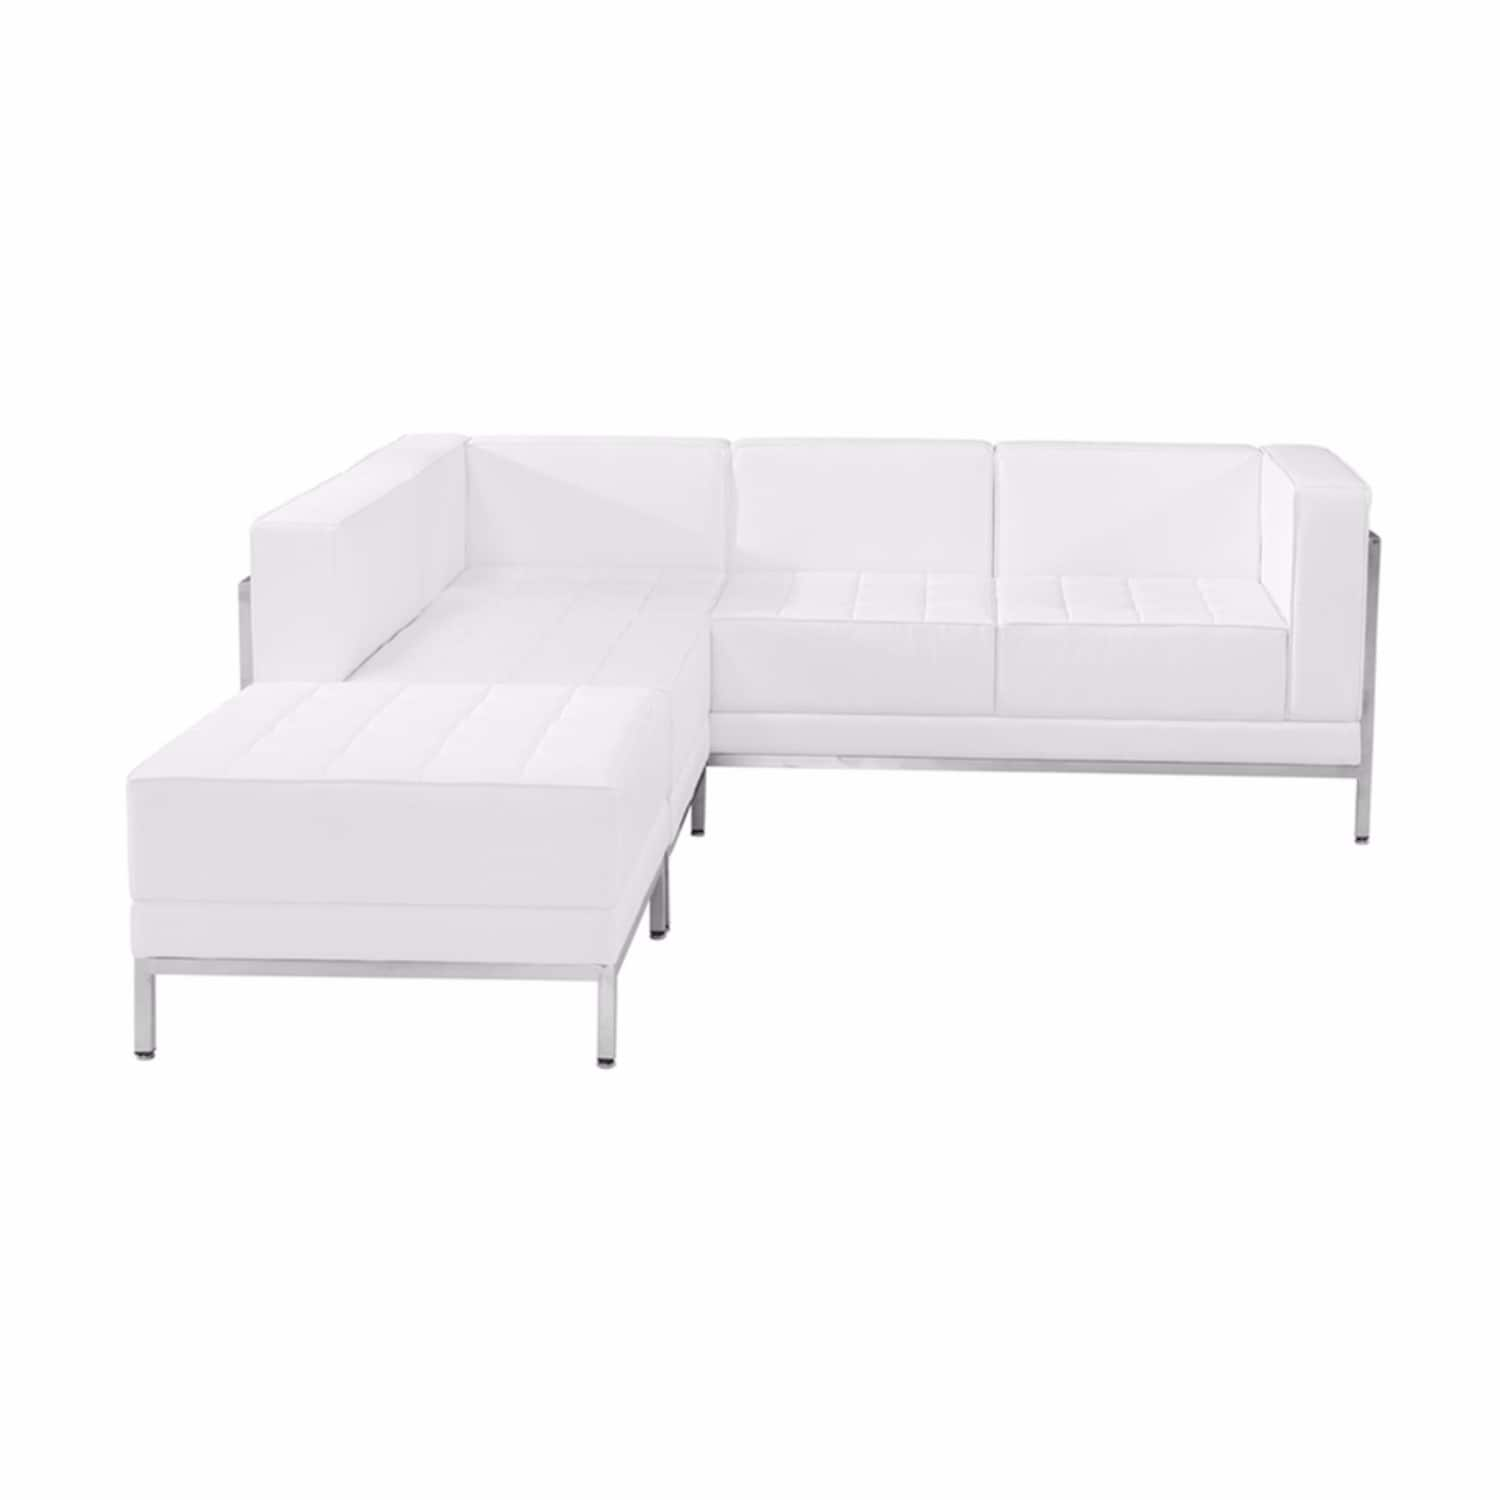 Offex 3 Piece Contemporary White Leather Reception Area Sectional Configuration Ofx 289039 Ff